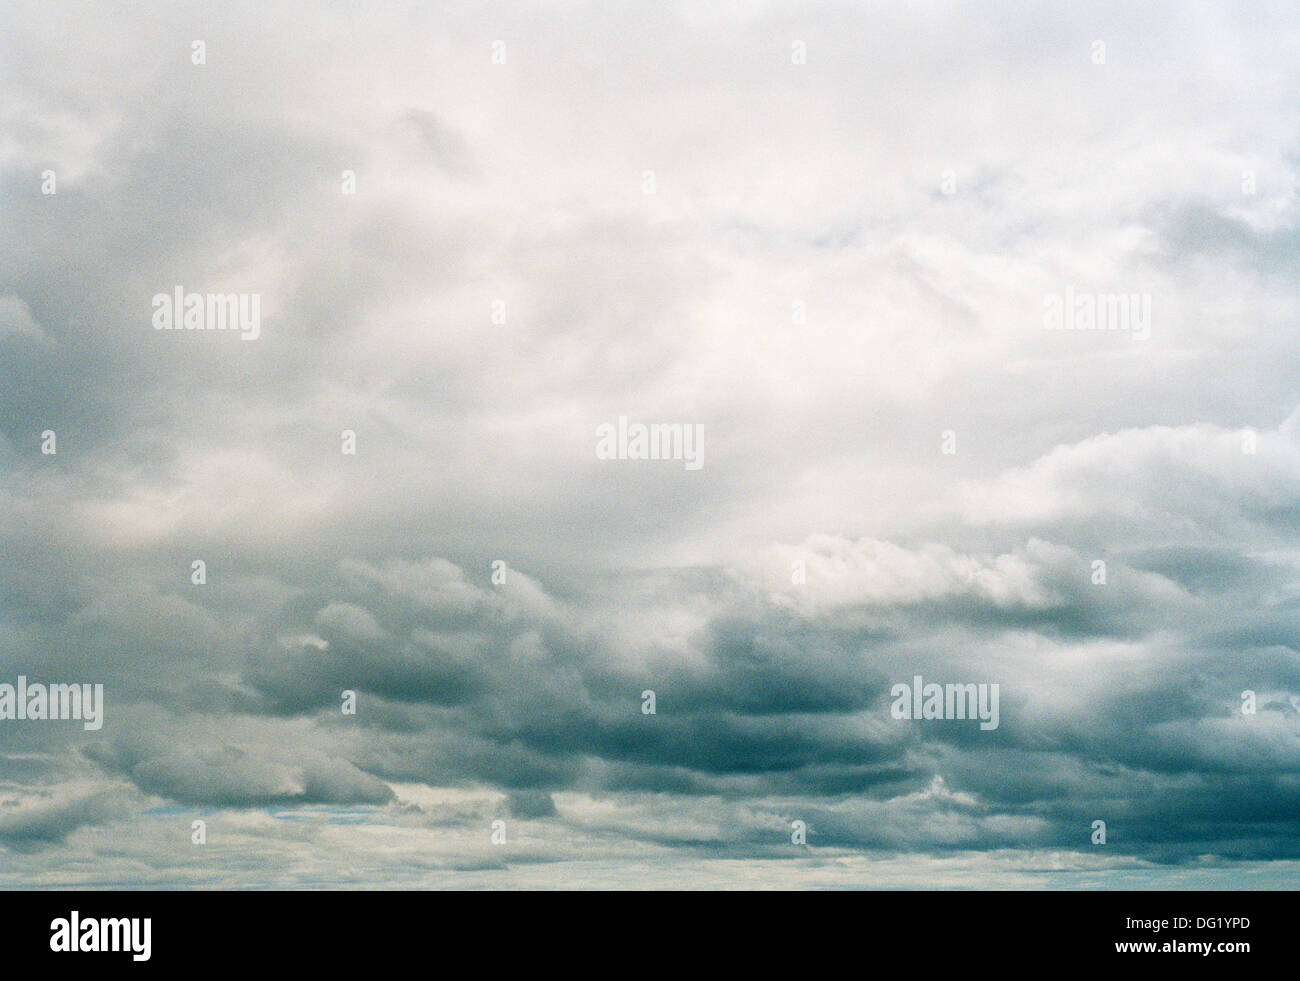 Dramatic Sky with Ominous Gray Clouds - Stock Image